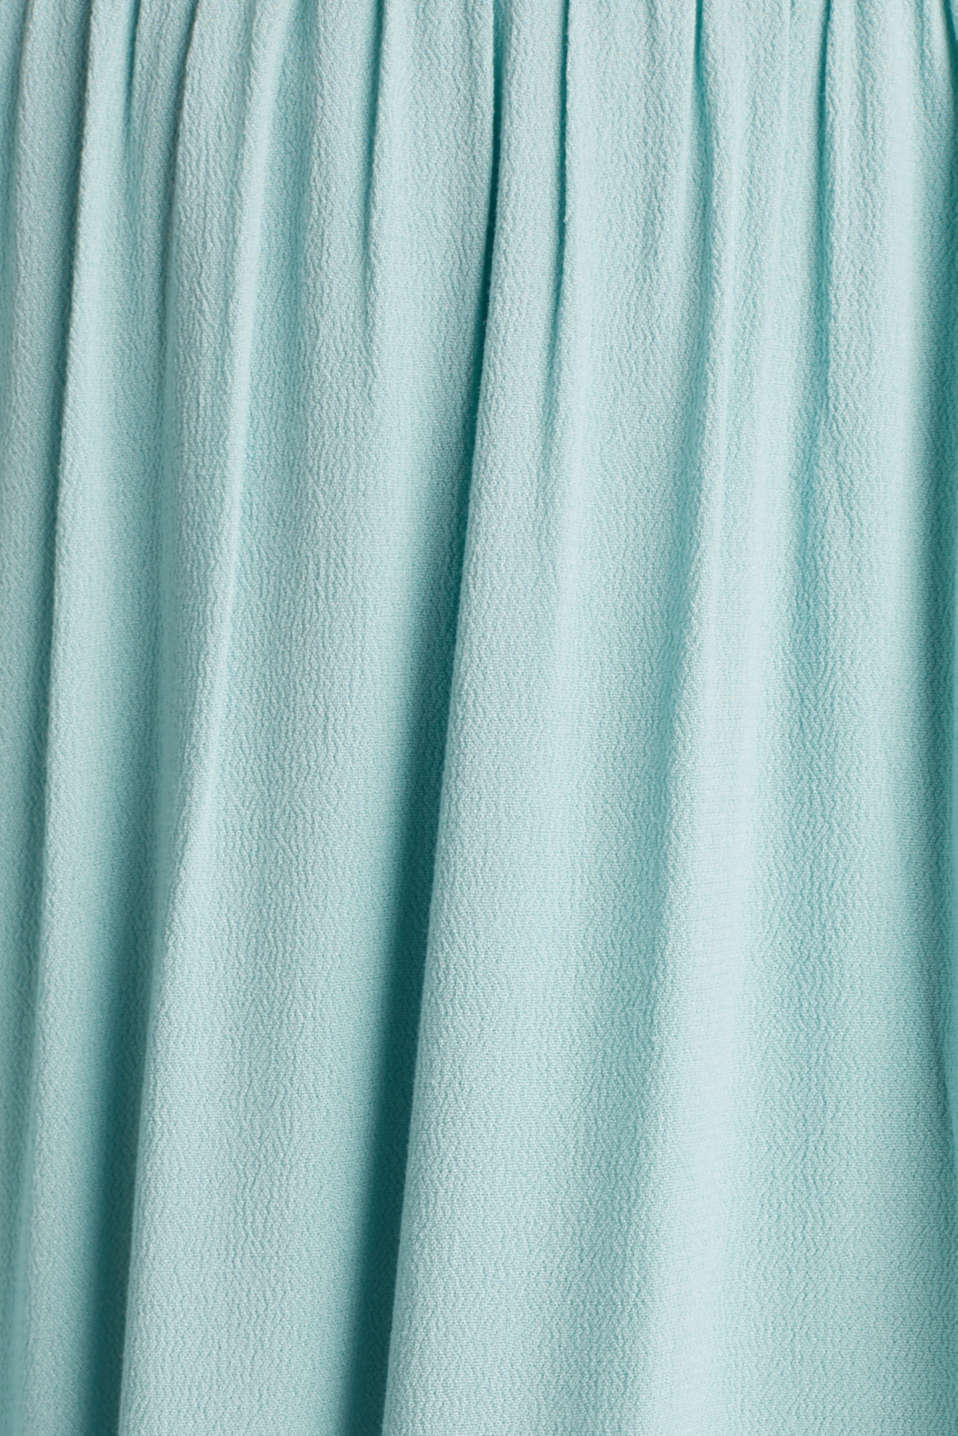 Maxi skirt in flowing crêpe, LIGHT AQUA GREEN, detail image number 4